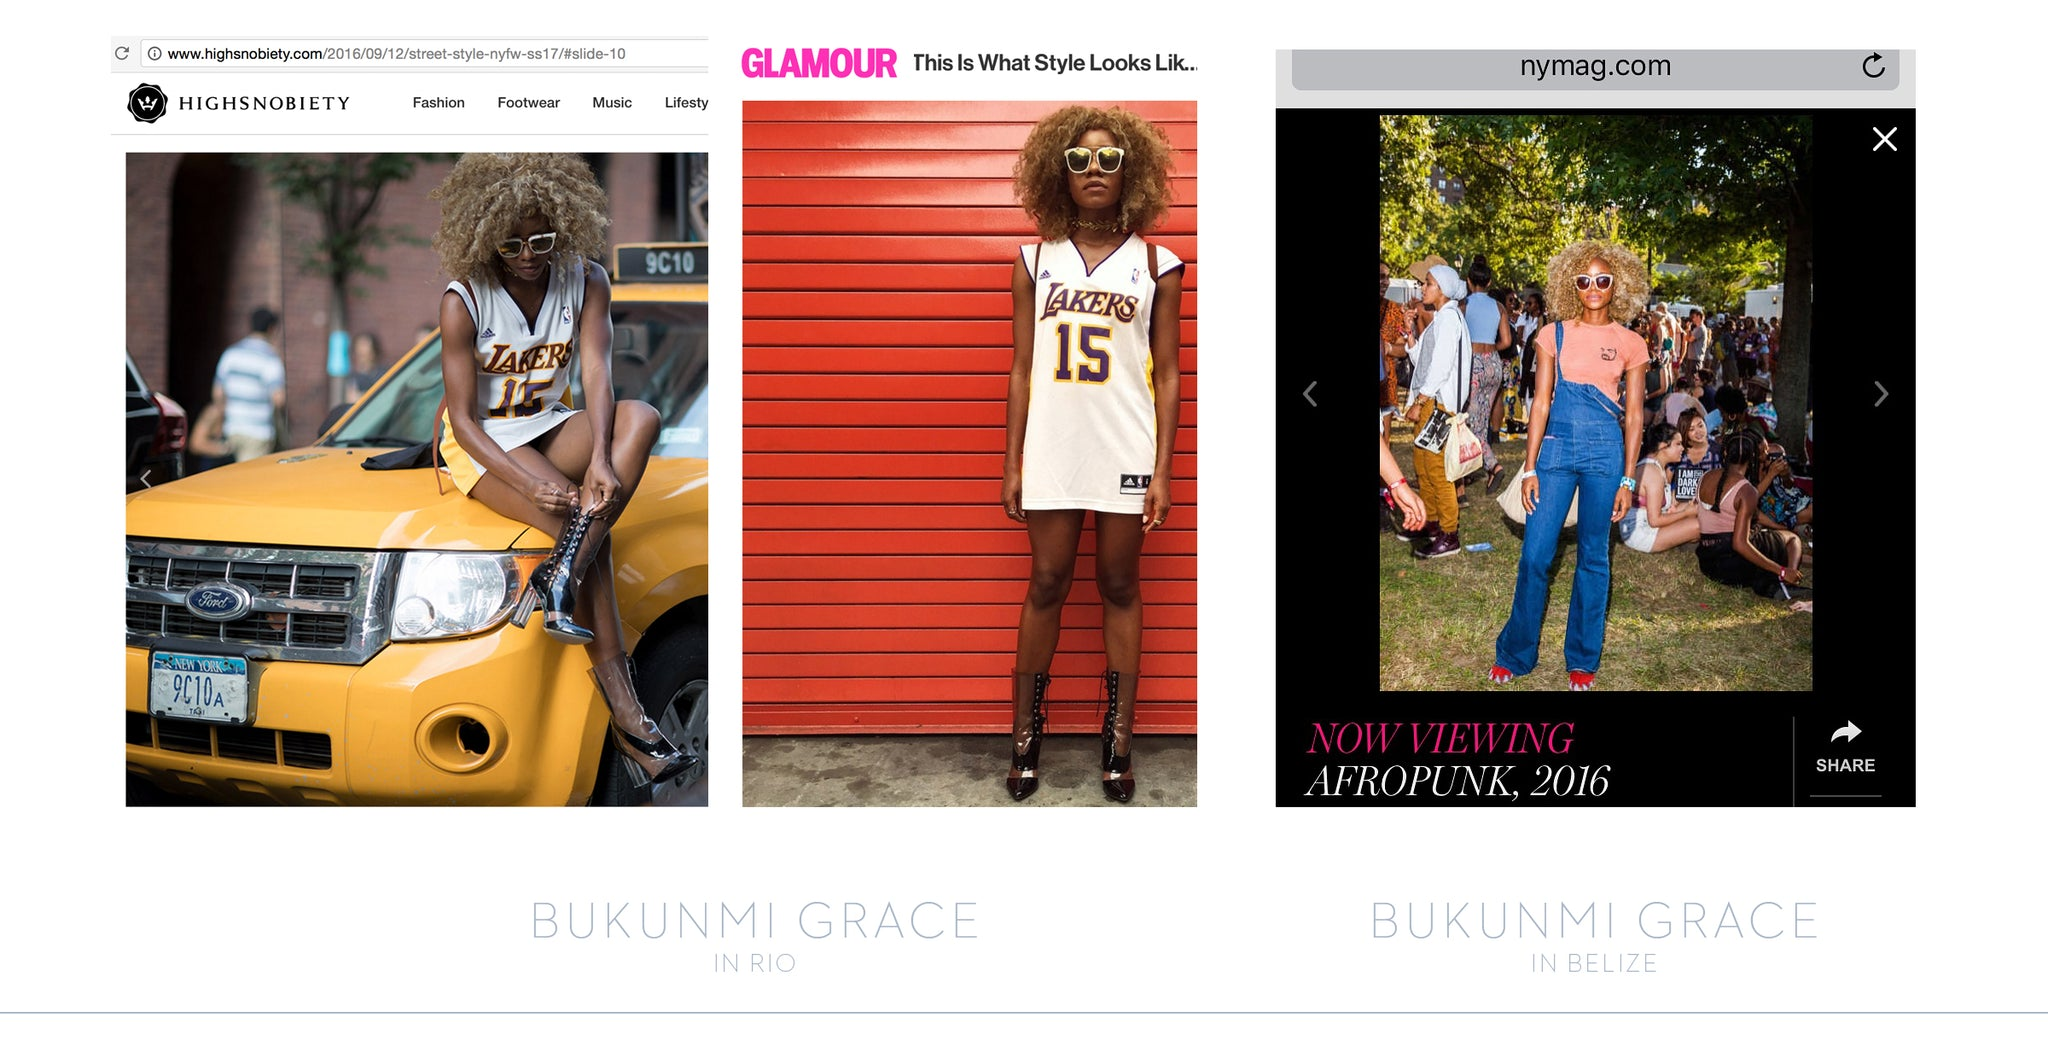 Bukunmi Grace in Tyche & Iset Designer Sunglasses -- NY Mag, The Cut, Glamour Mag, & High Snobiety